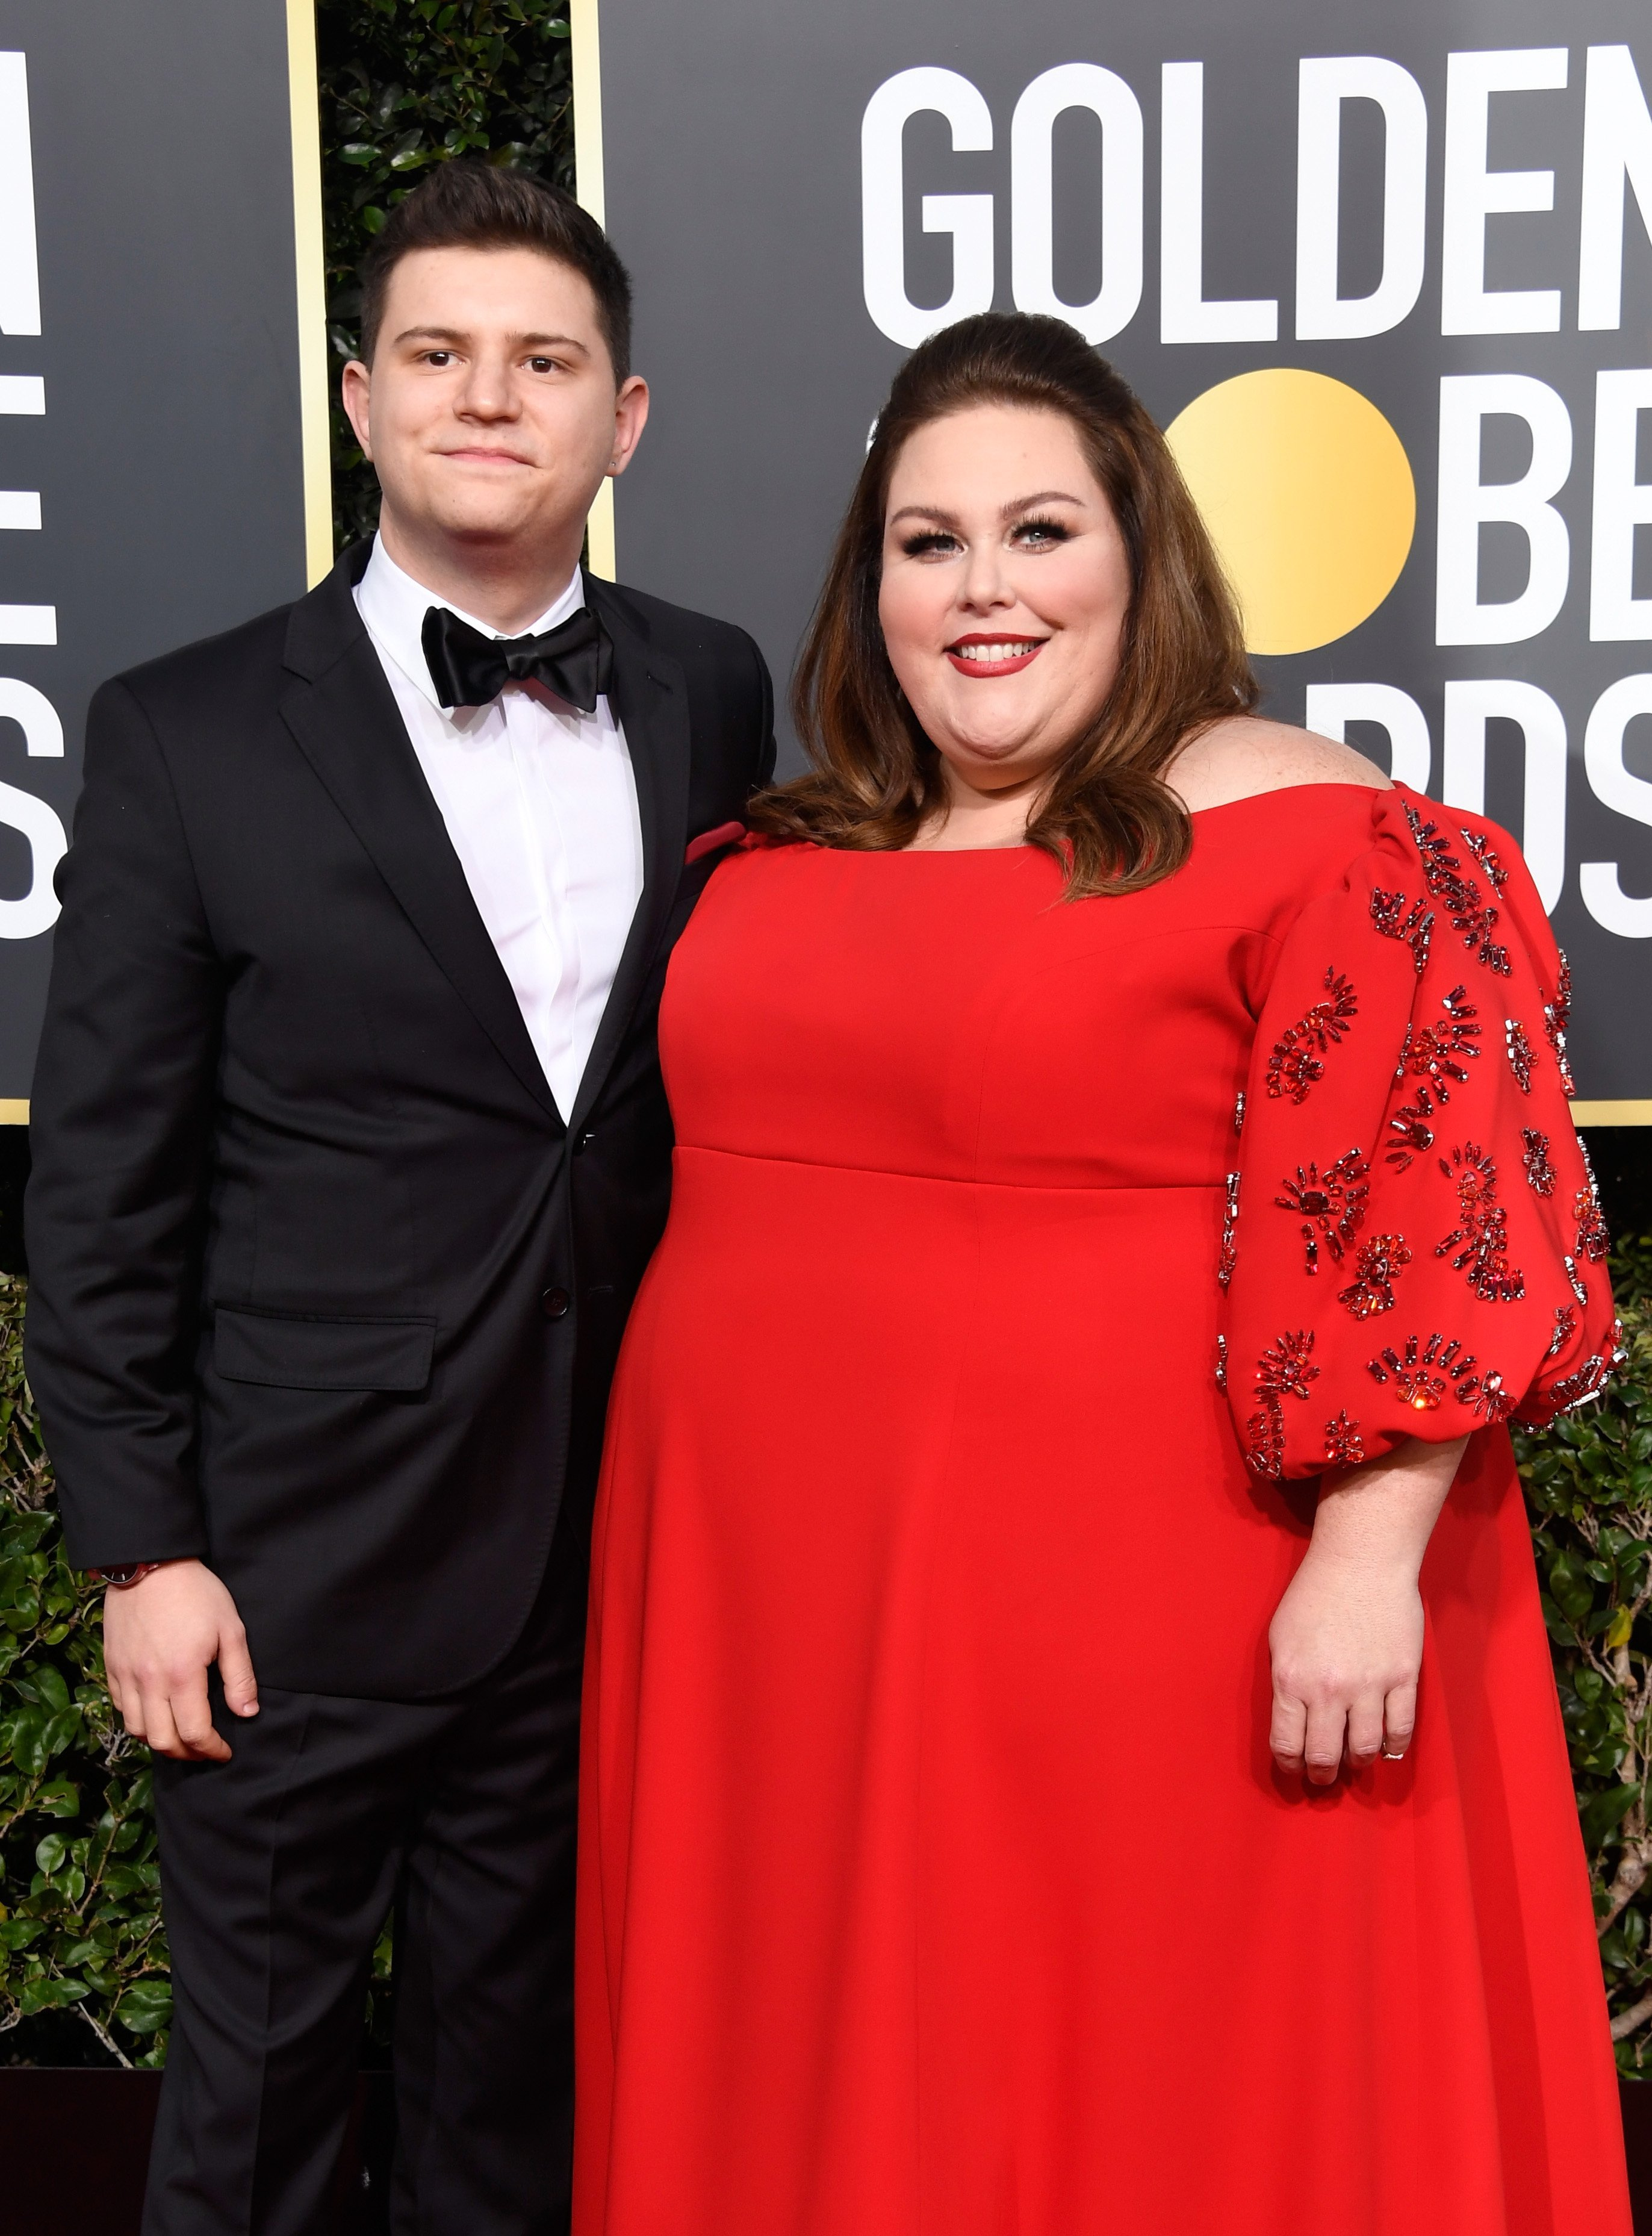 Chrissy Metz and Hal Rosenfield attend the 2019 Golden Globe Awards | Photo: Getty Images